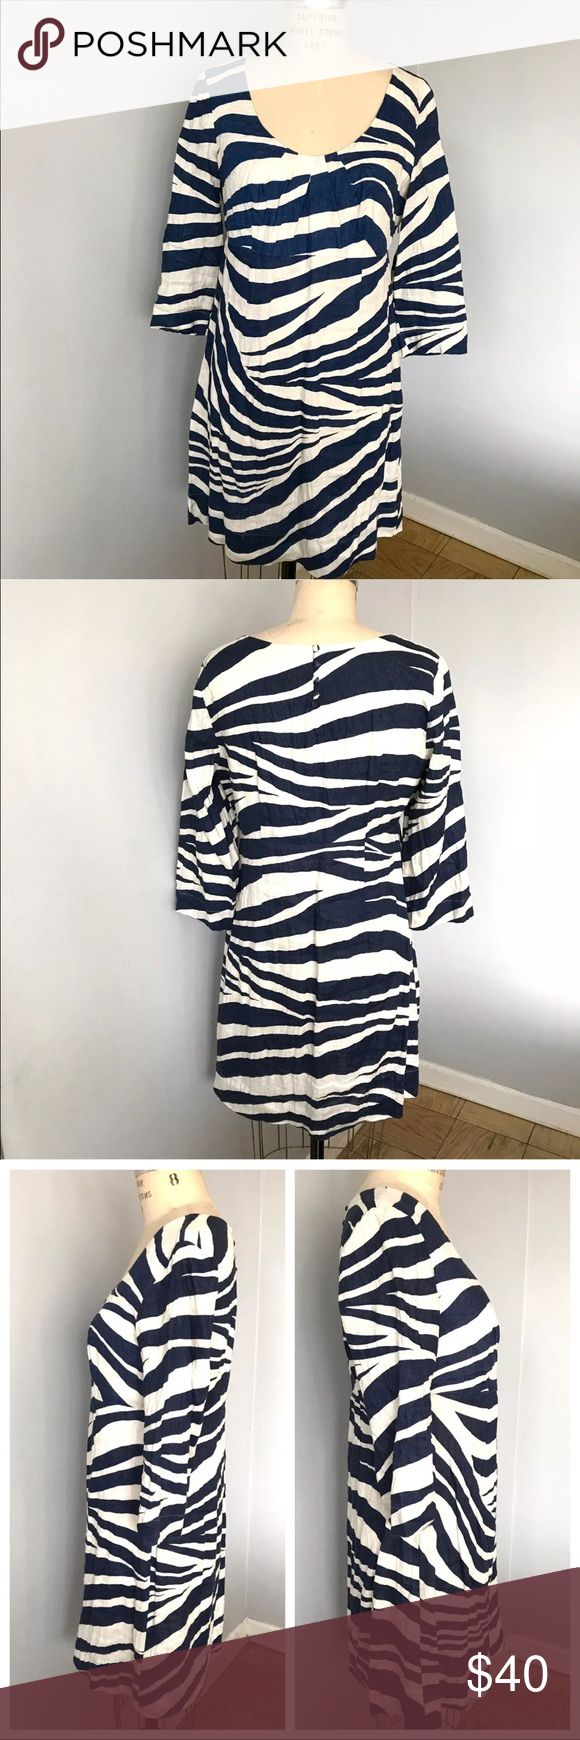 "Boden Linen Zebra Print Dress Boden Women's Linen Navy Cream Zebra Print 3/4 Sleeve Dress  Good condition with no damage or stains.  DETAILS: Buttons in the back from neck (see photo 4)  MEASUREMENTS: 38"" length 37"" bust 33"" waist 41"" hip  ***Please feel free to ask any questions***  💚Thank you for your interest!💚  (LJ0001:1223) Boden Dresses"